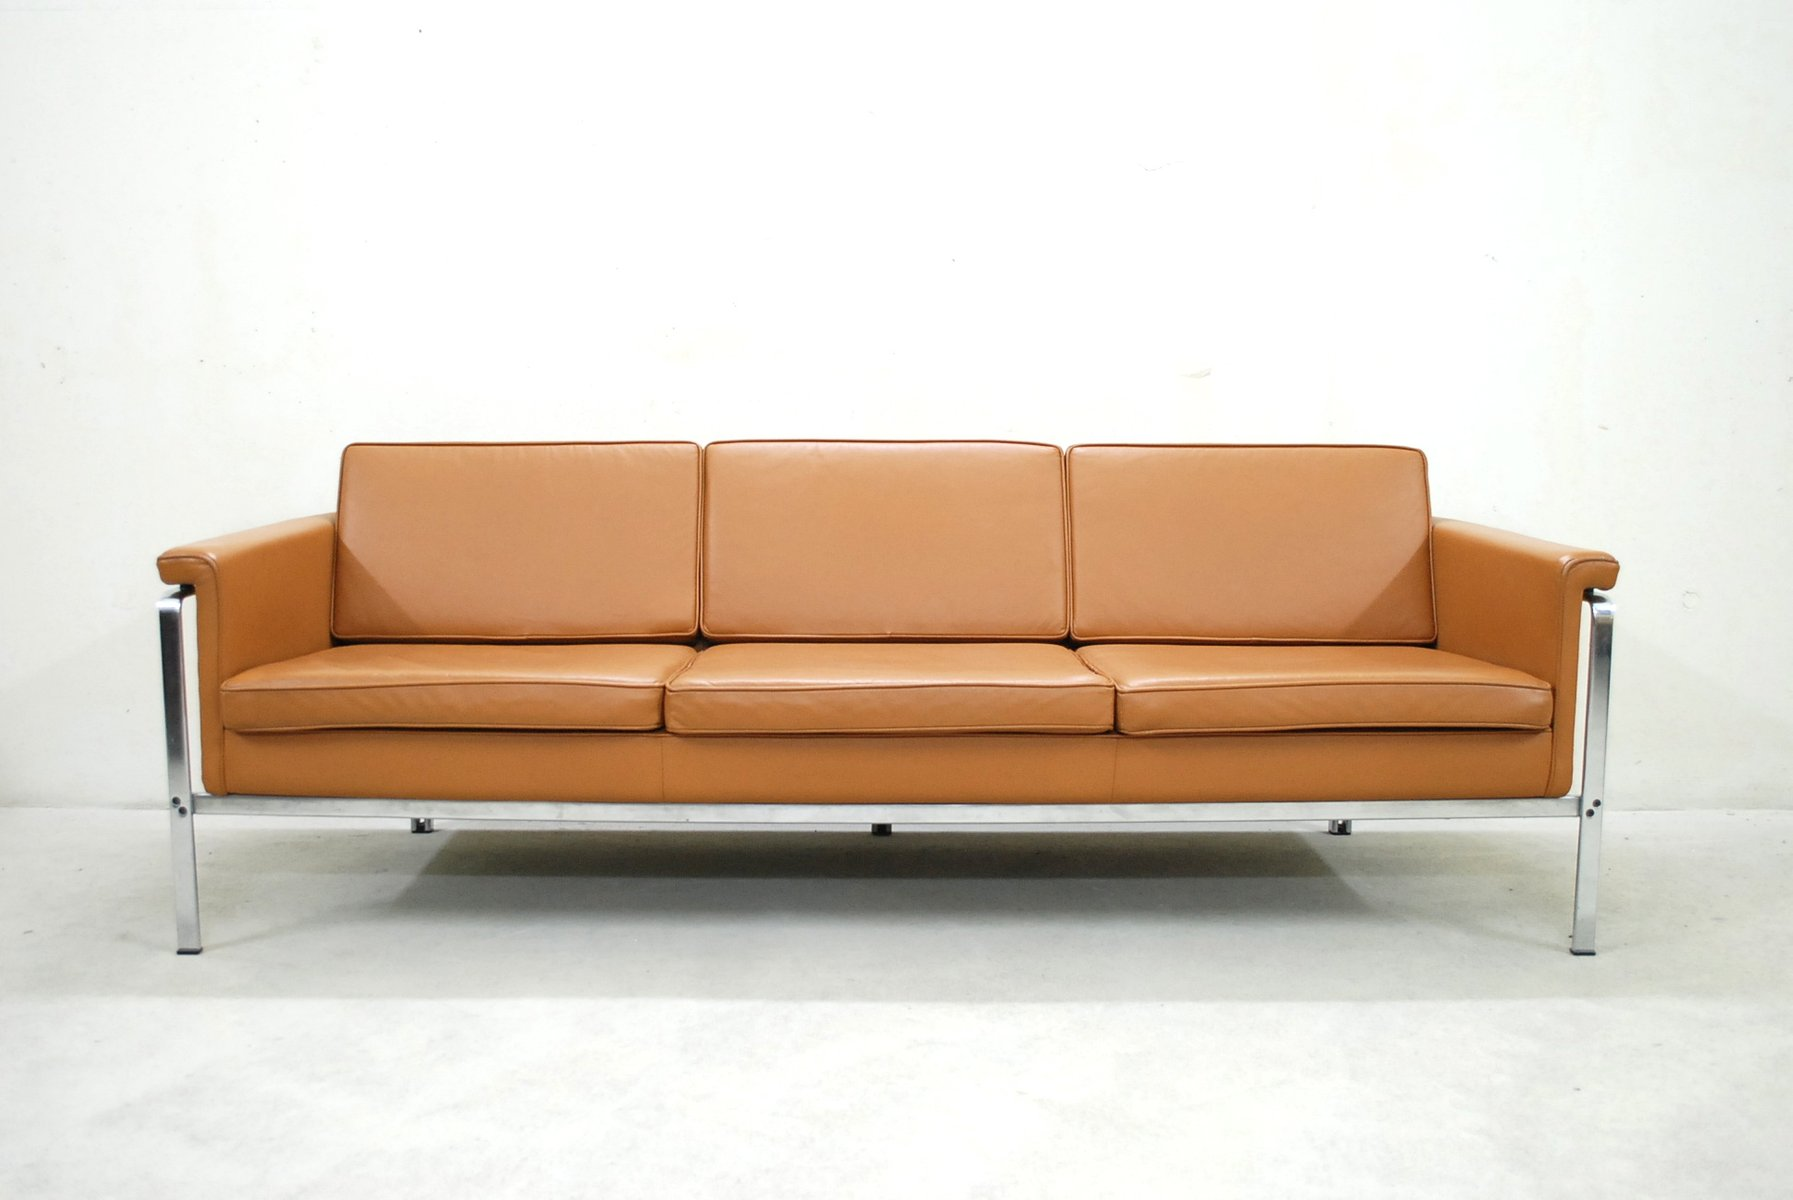 german 6913 cognac leather sofa by horst br ning for kill. Black Bedroom Furniture Sets. Home Design Ideas